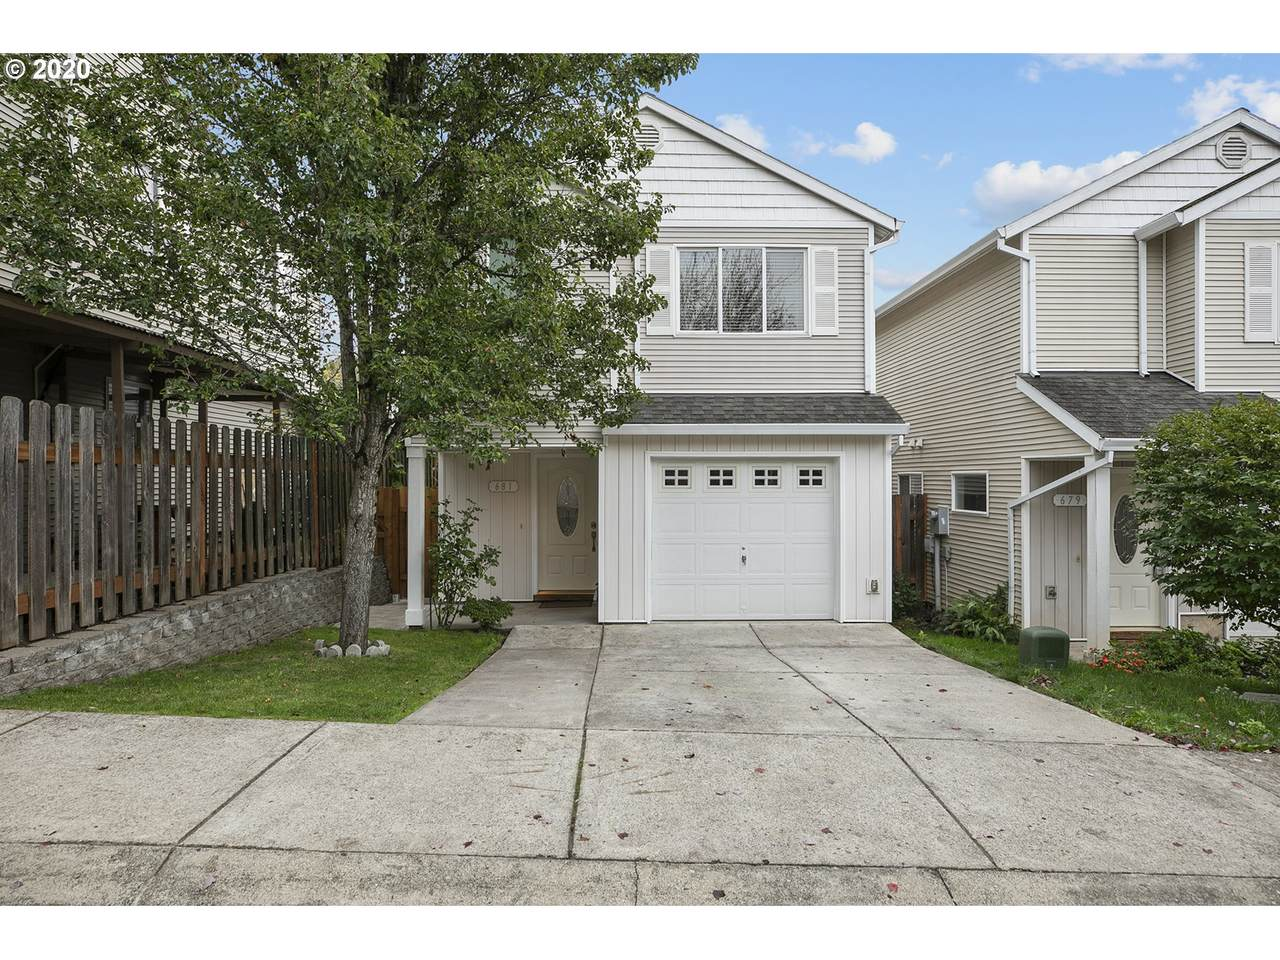 681 148TH Ave - Photo 1